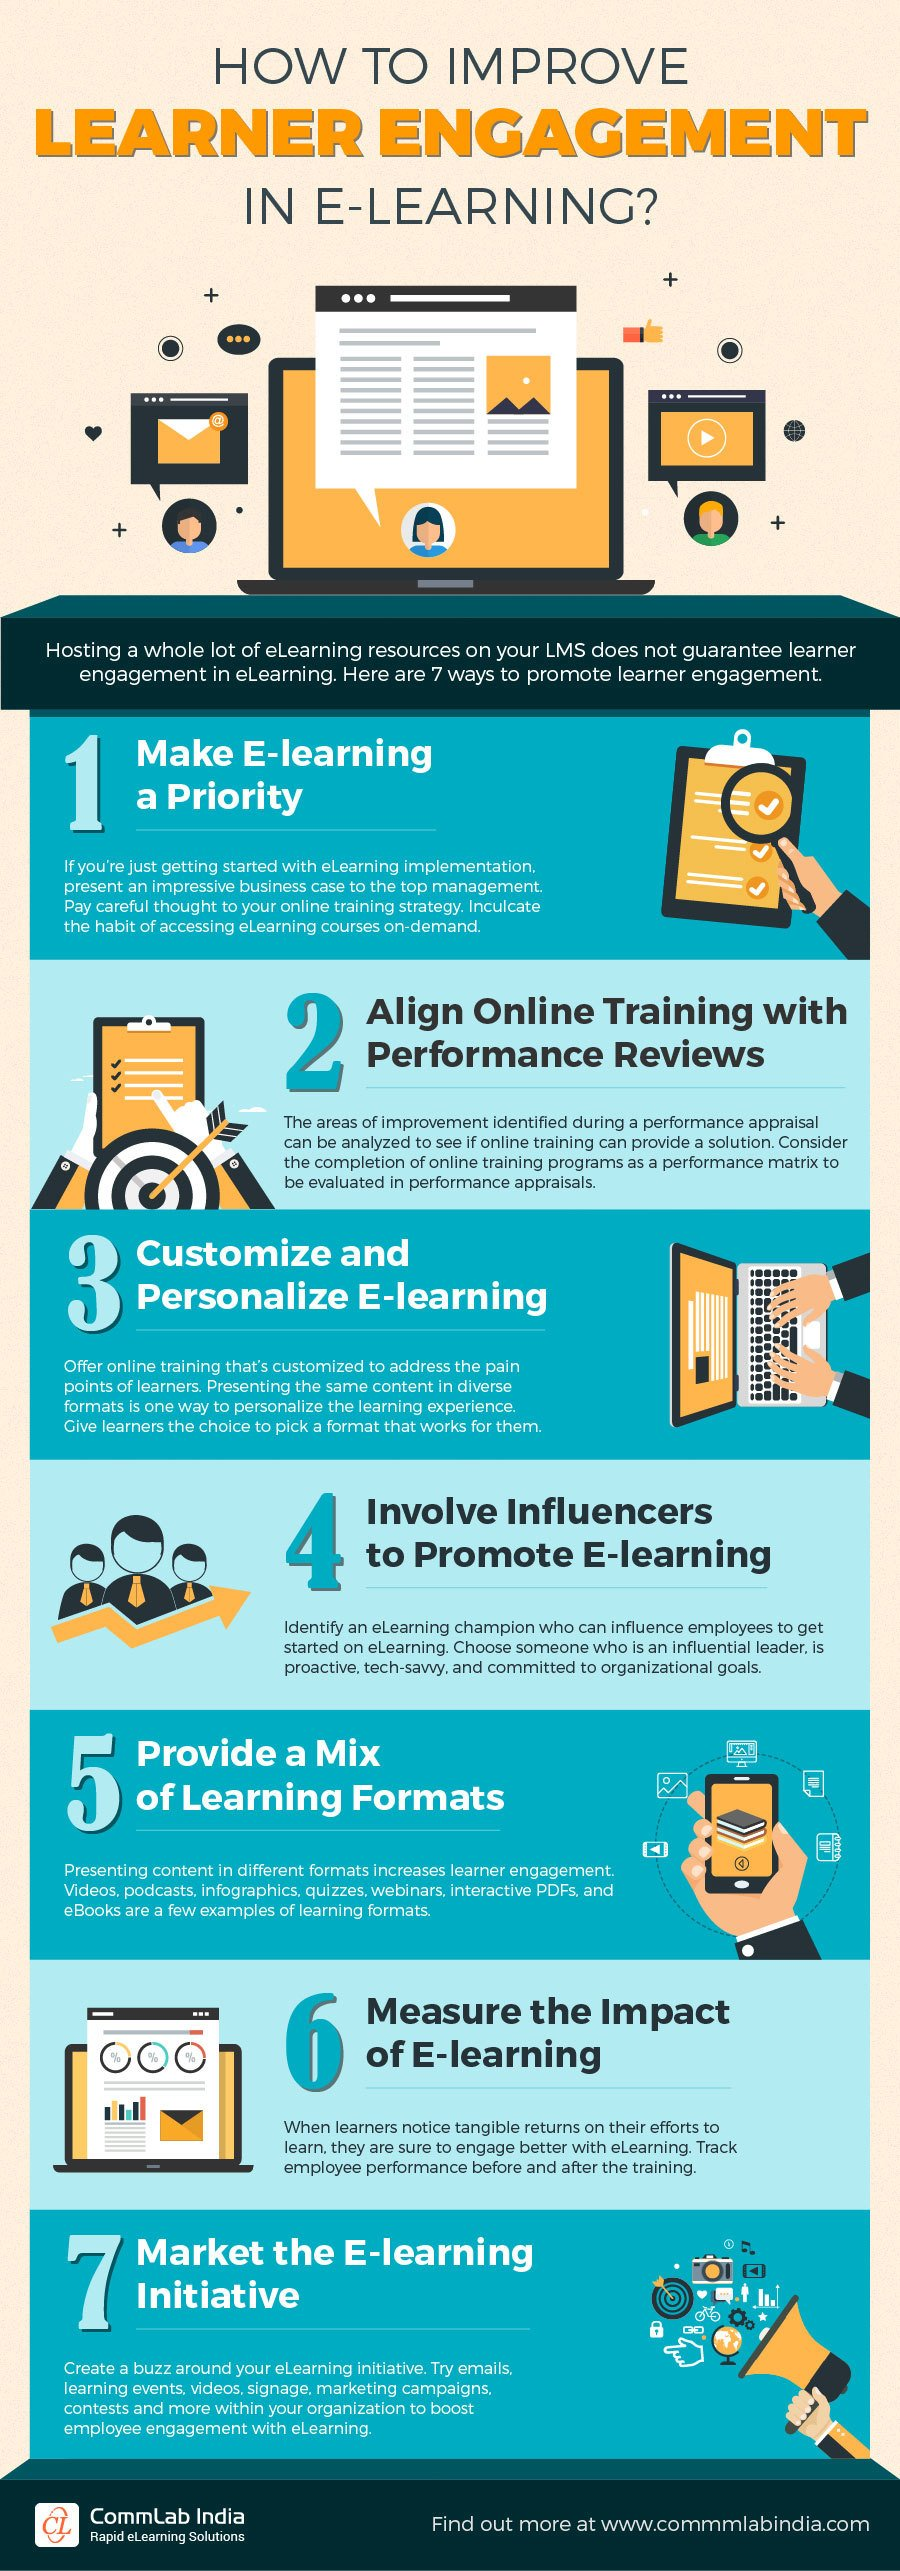 How To Improve Learner Engagement In eLearning